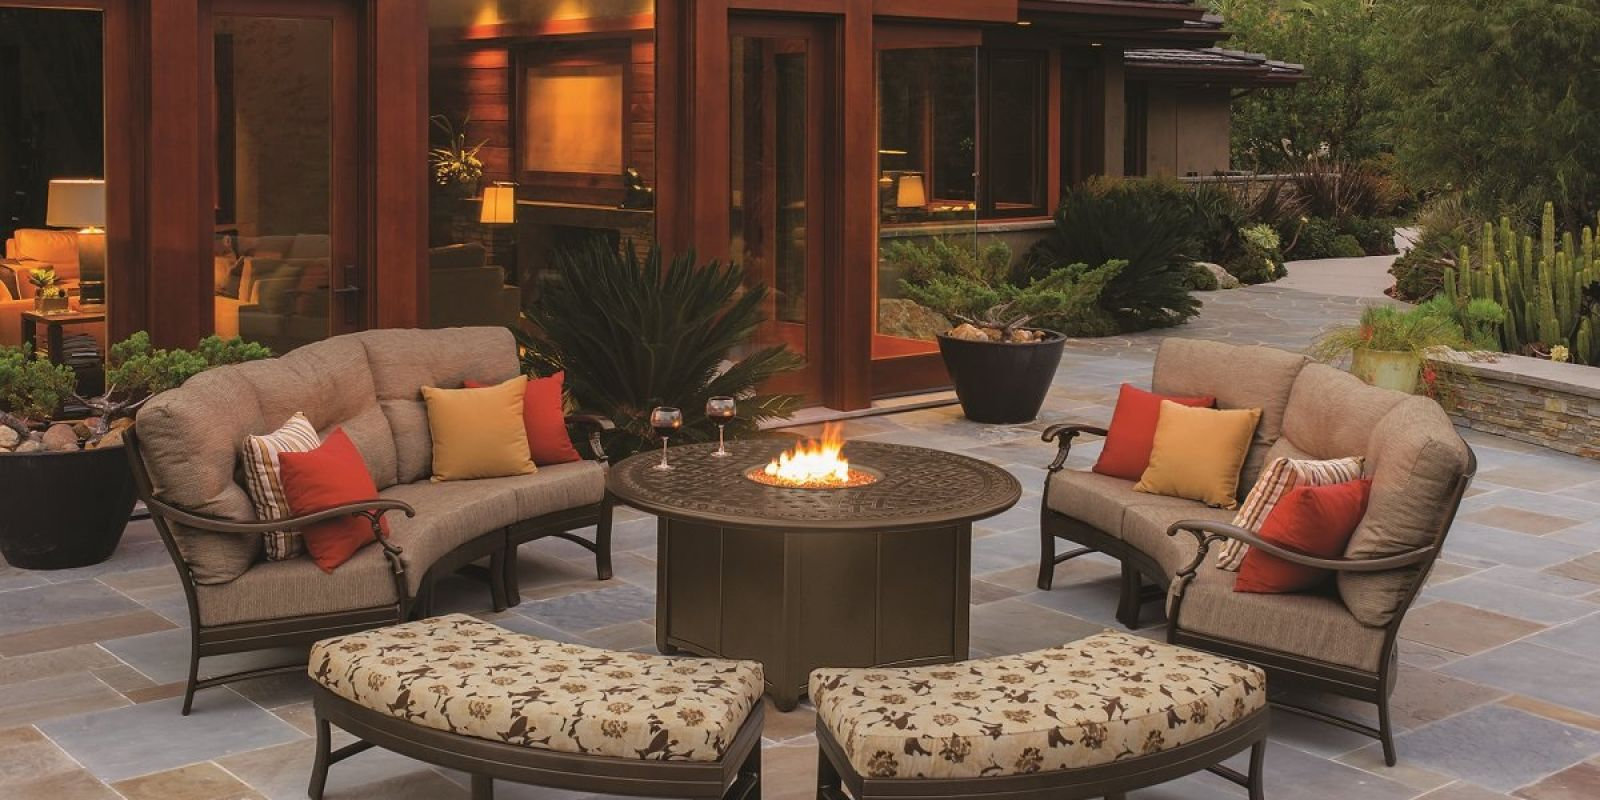 Outdoor Patio Design Specialist | American Casual Living on Casual Living Patio id=57546